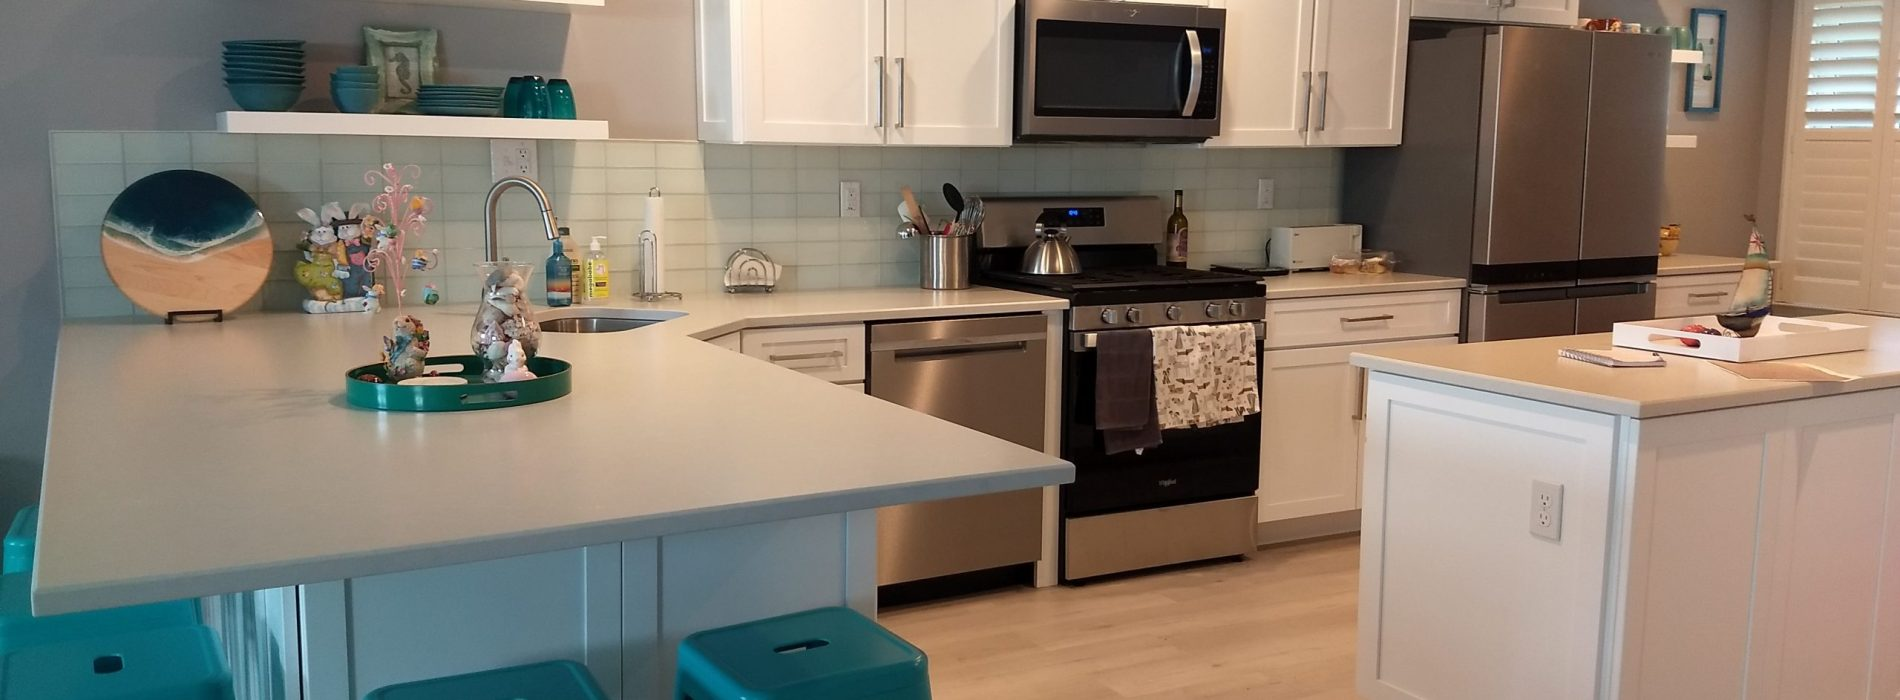 white with blue accent kitchen renovaiton with a bfast bar and island